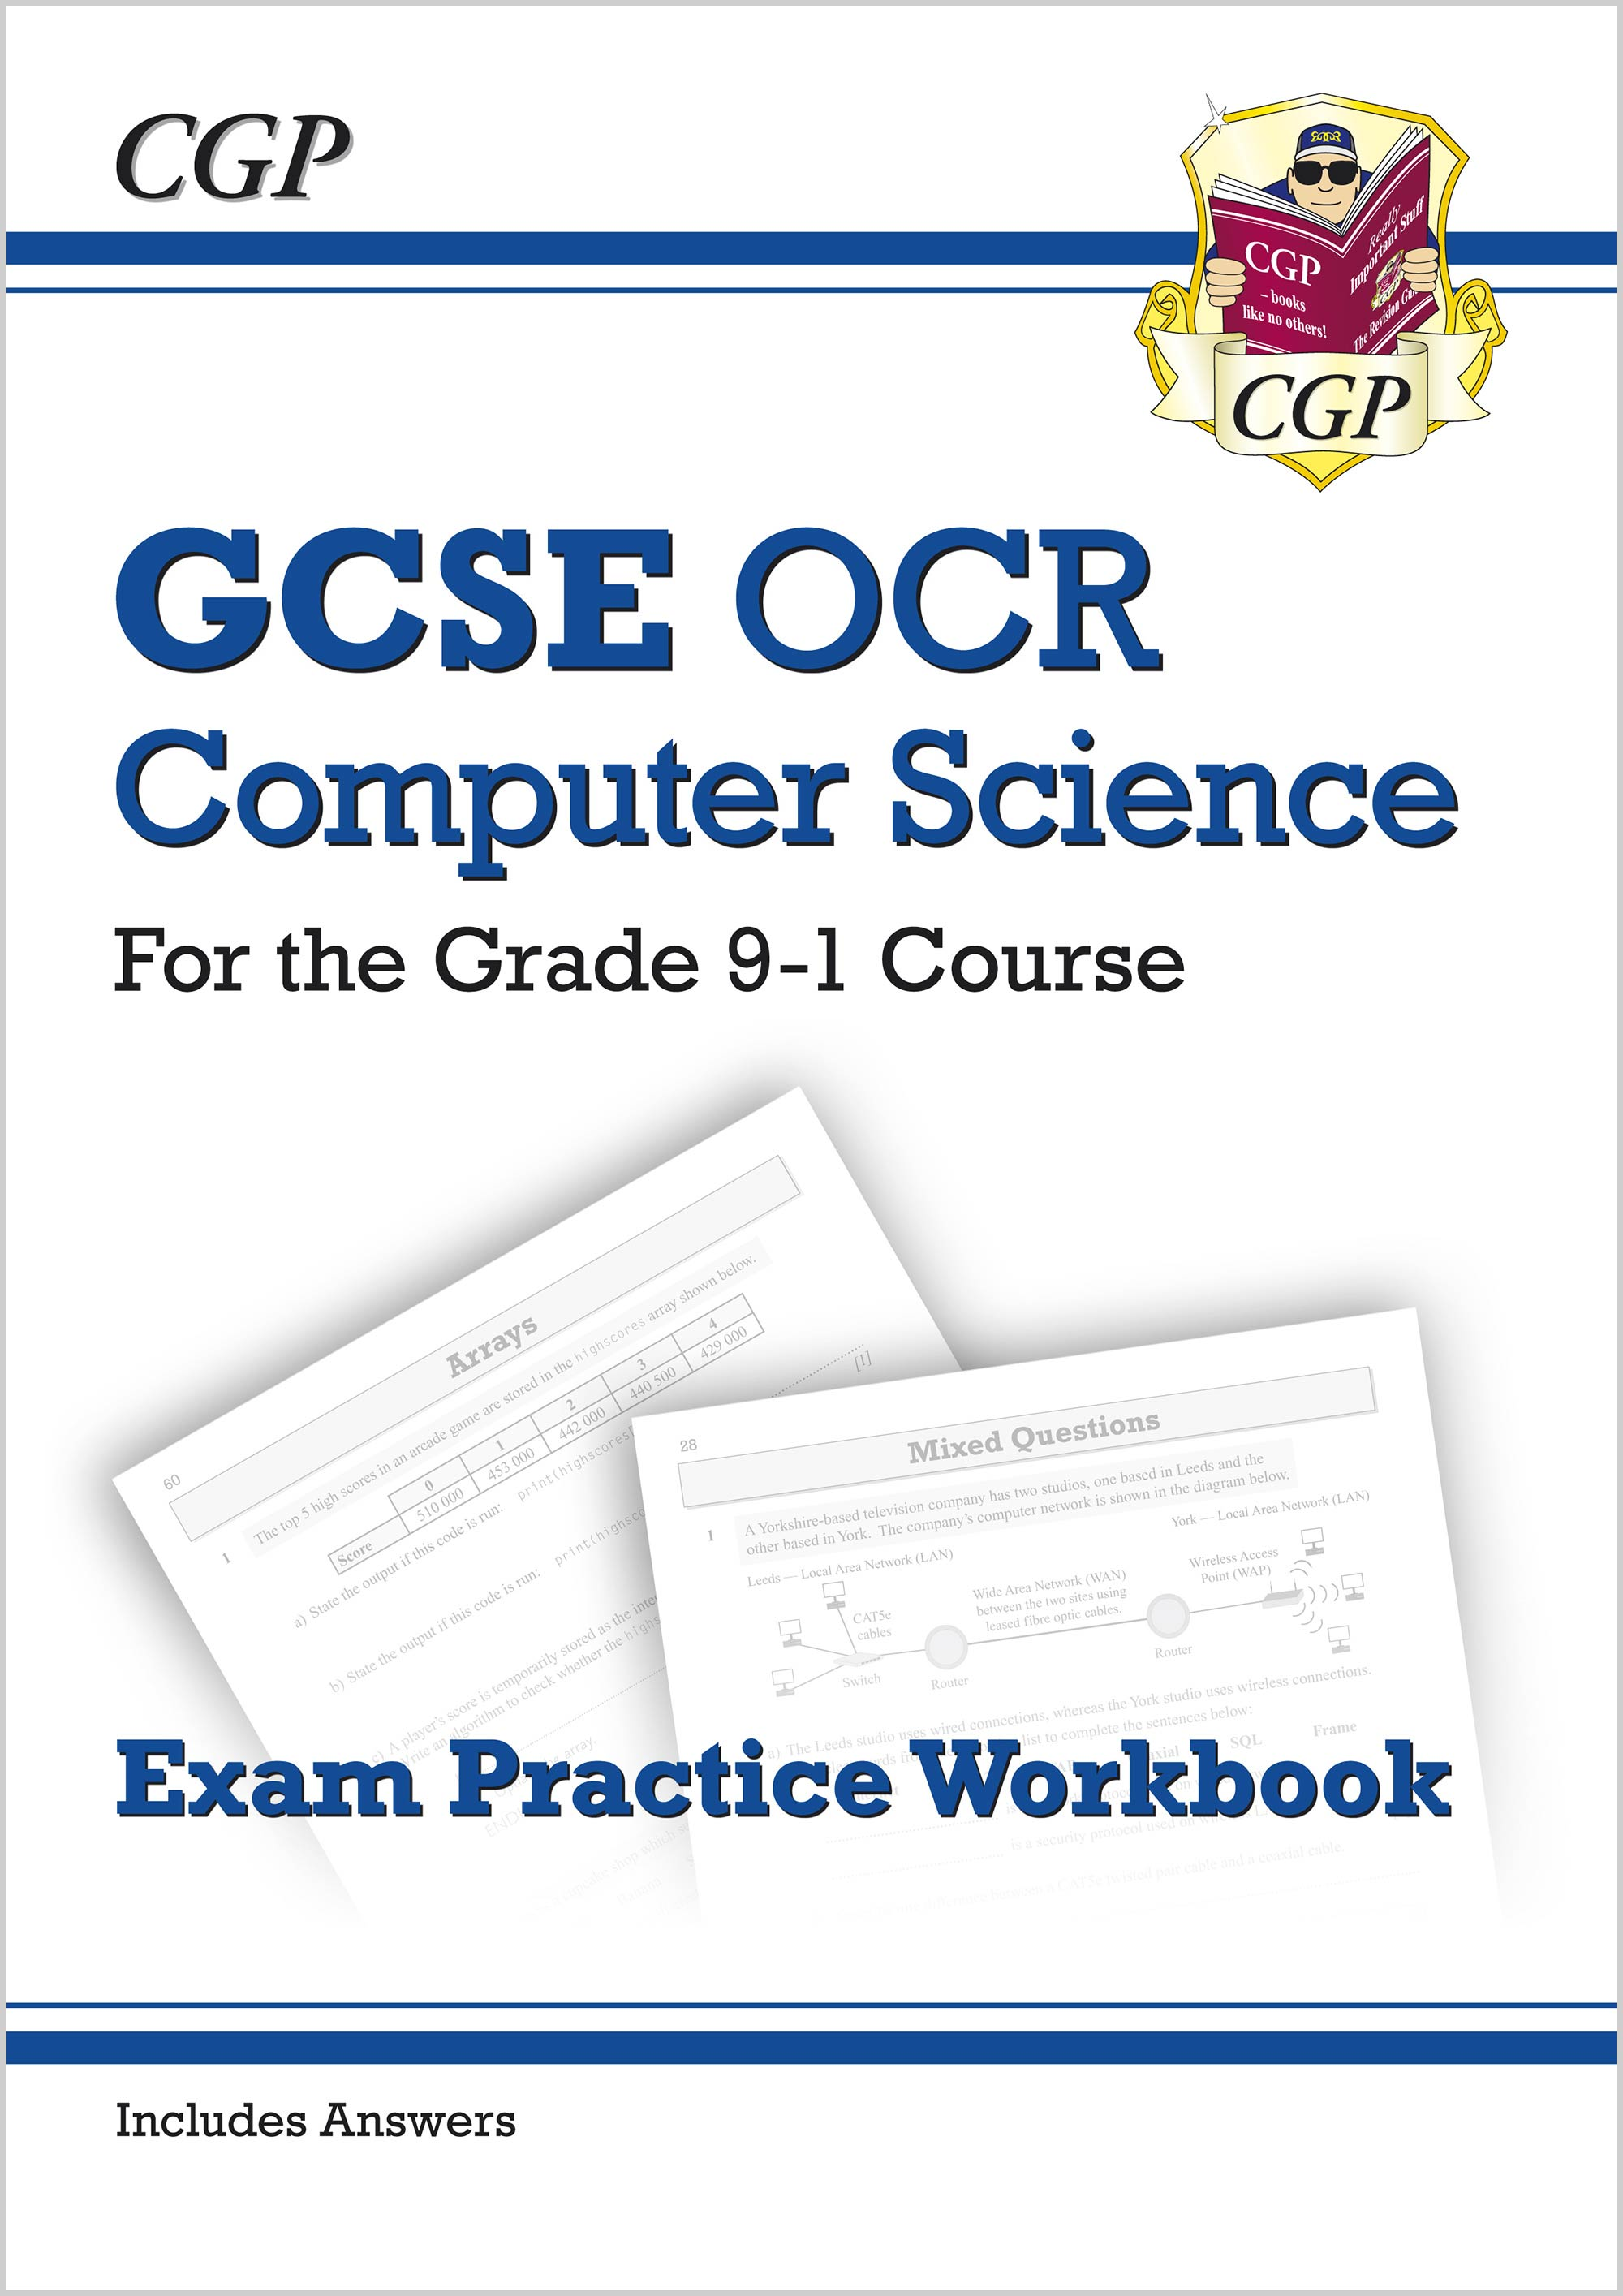 COQ41 - GCSE Computer Science OCR Exam Practice Workbook - for exams in 2020 and 2021